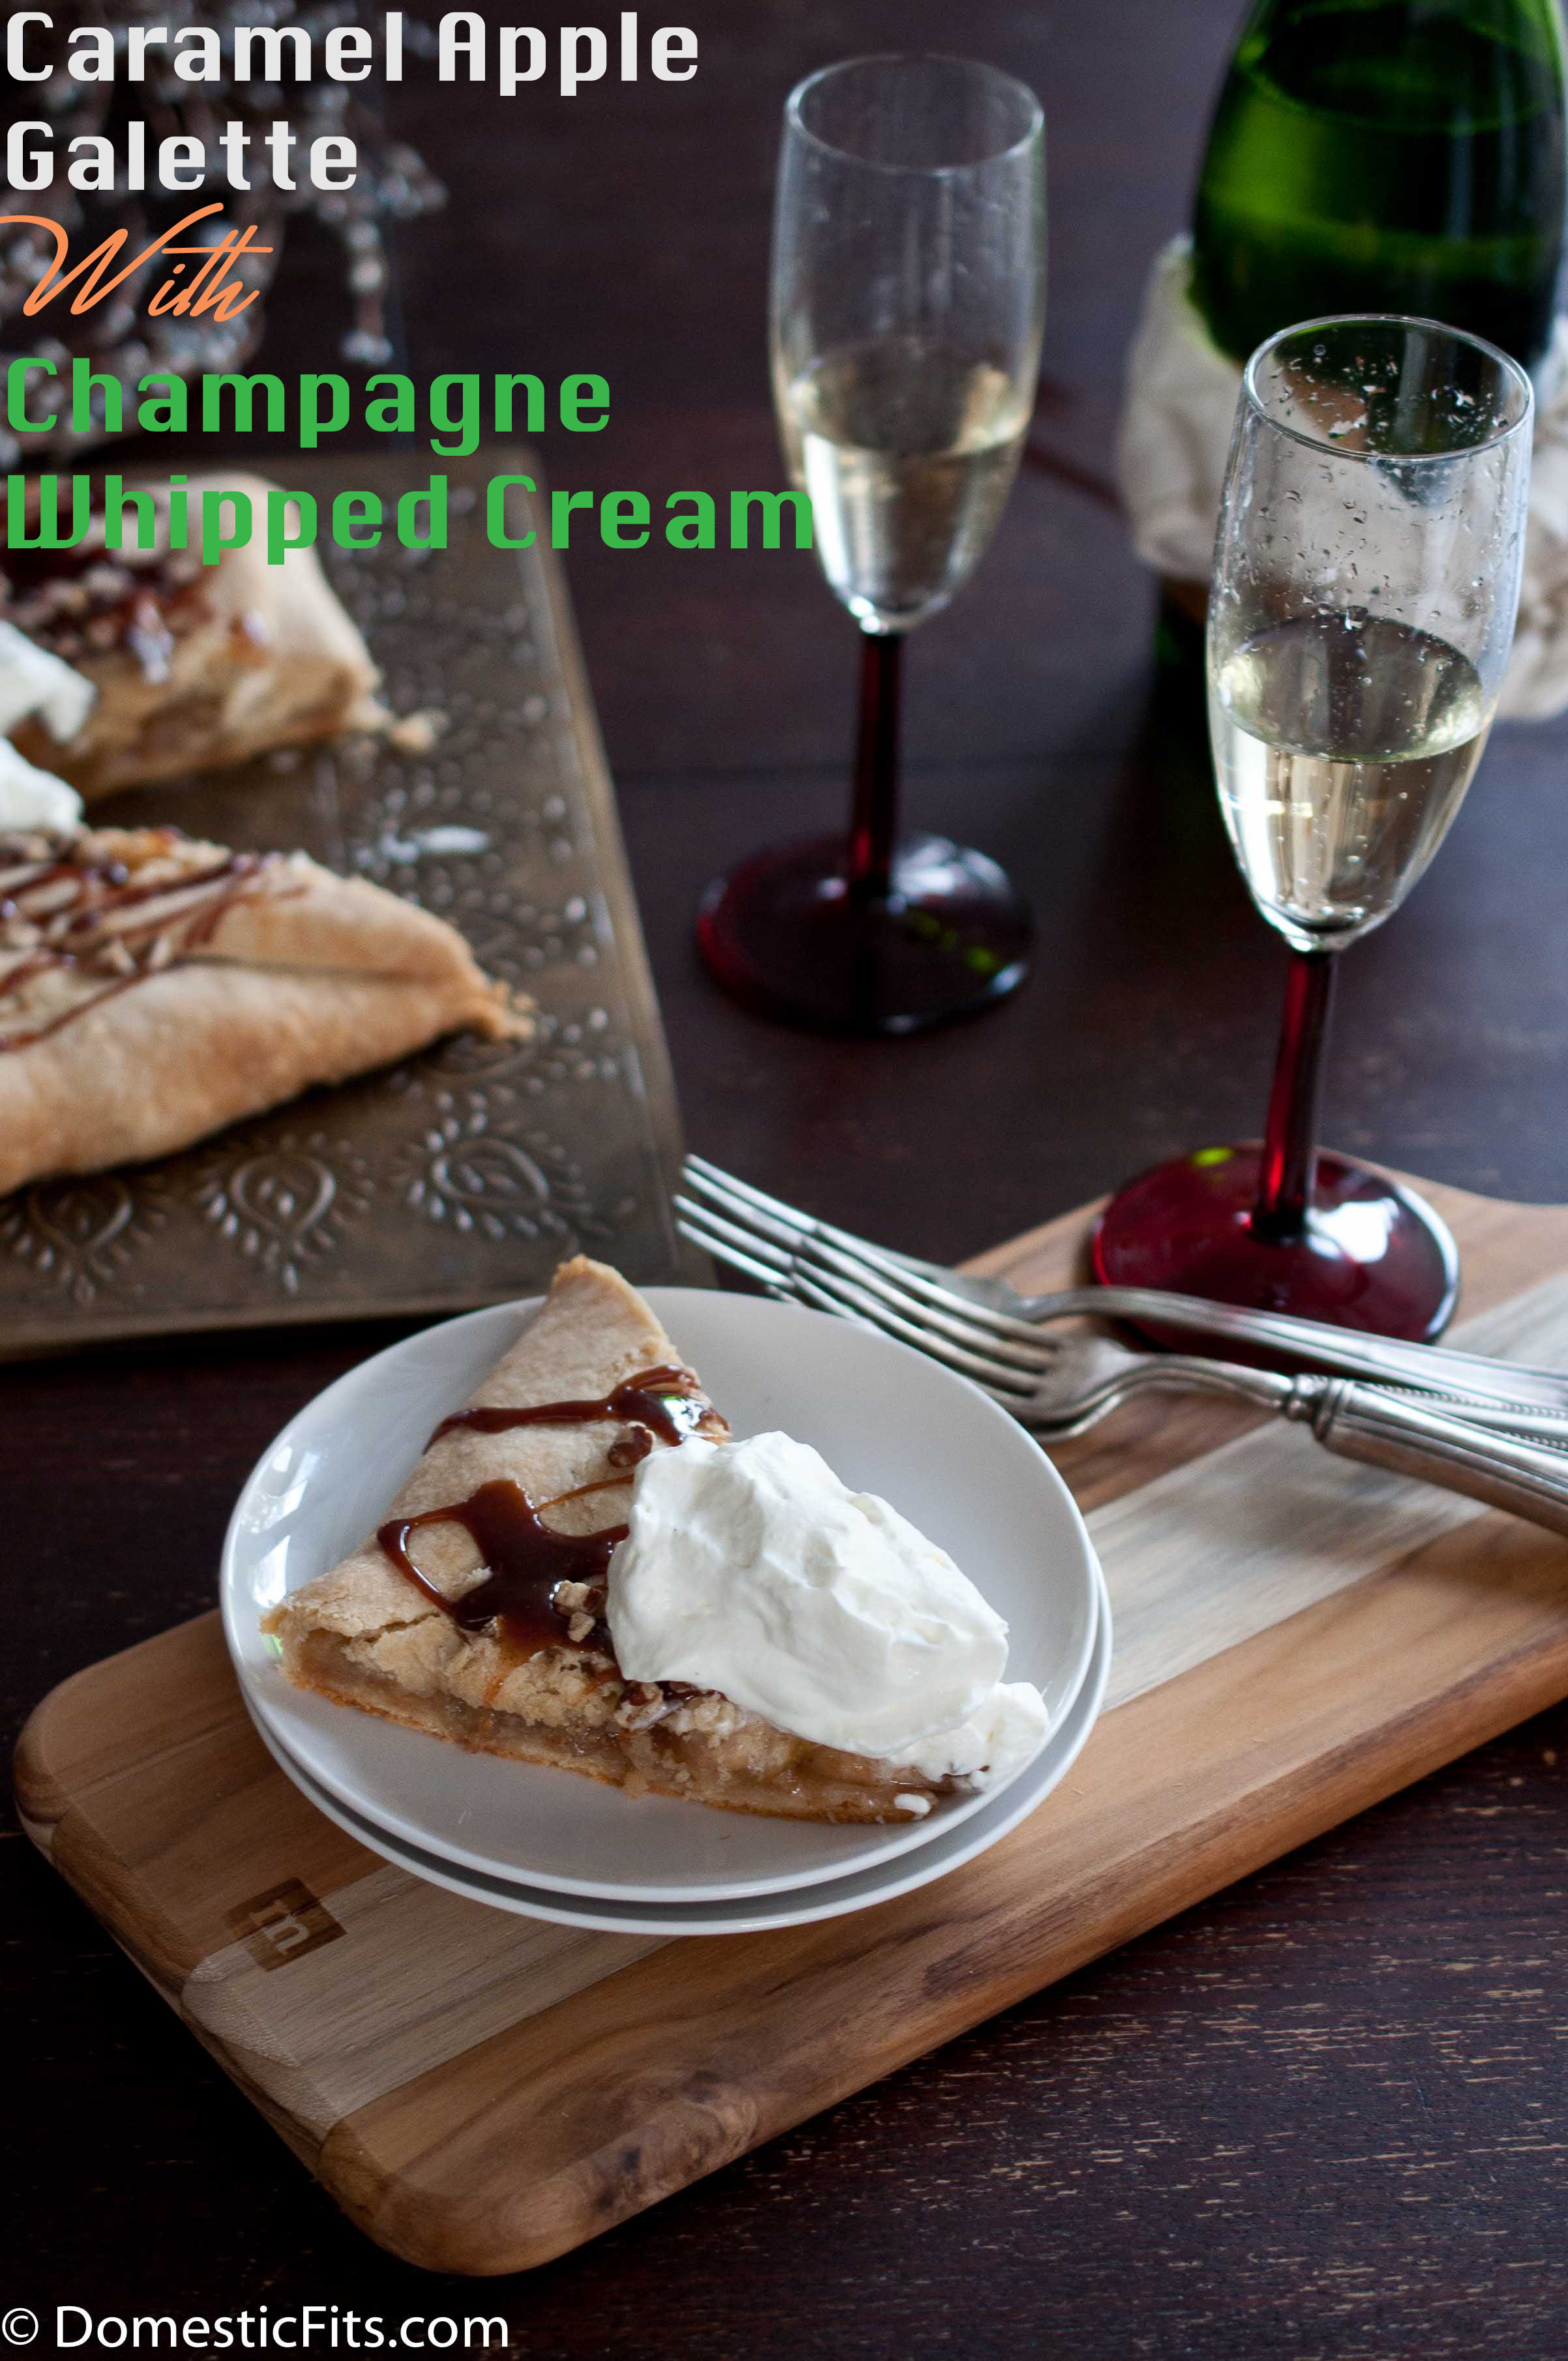 Caramel Apple Galette With Champagne Whipped Cream2p